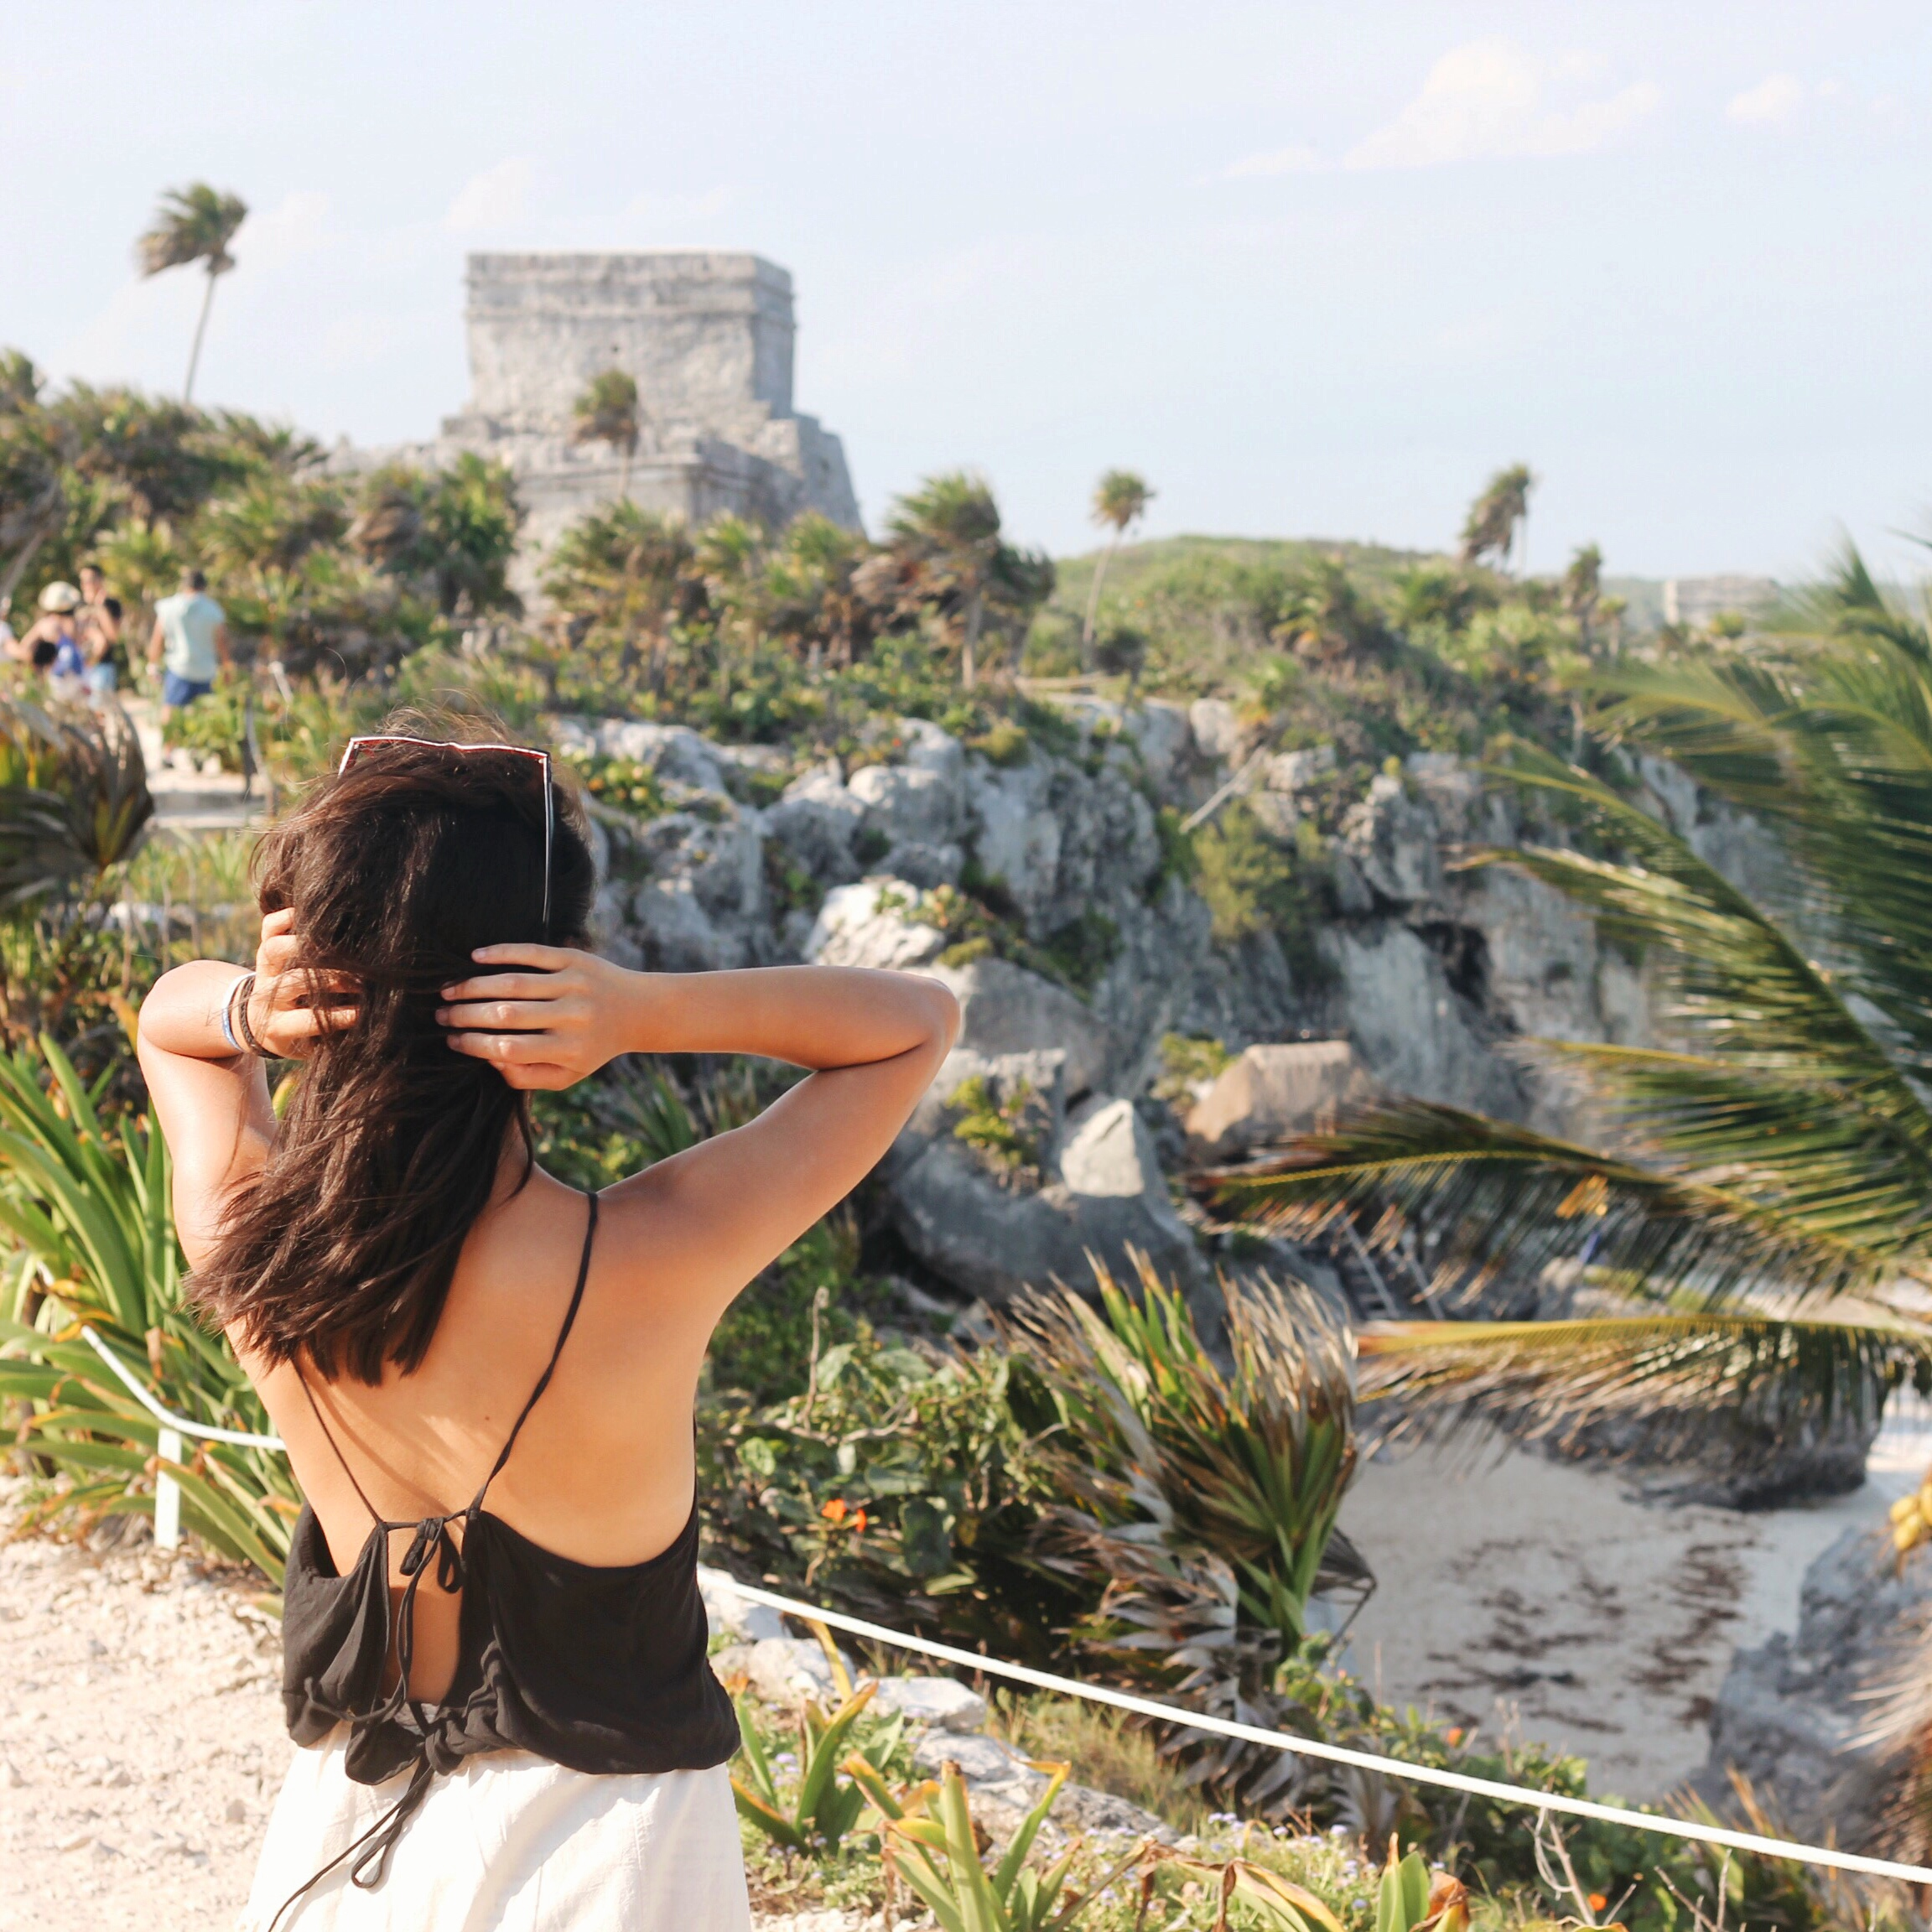 Natalie gazes at the Tulum ruins.